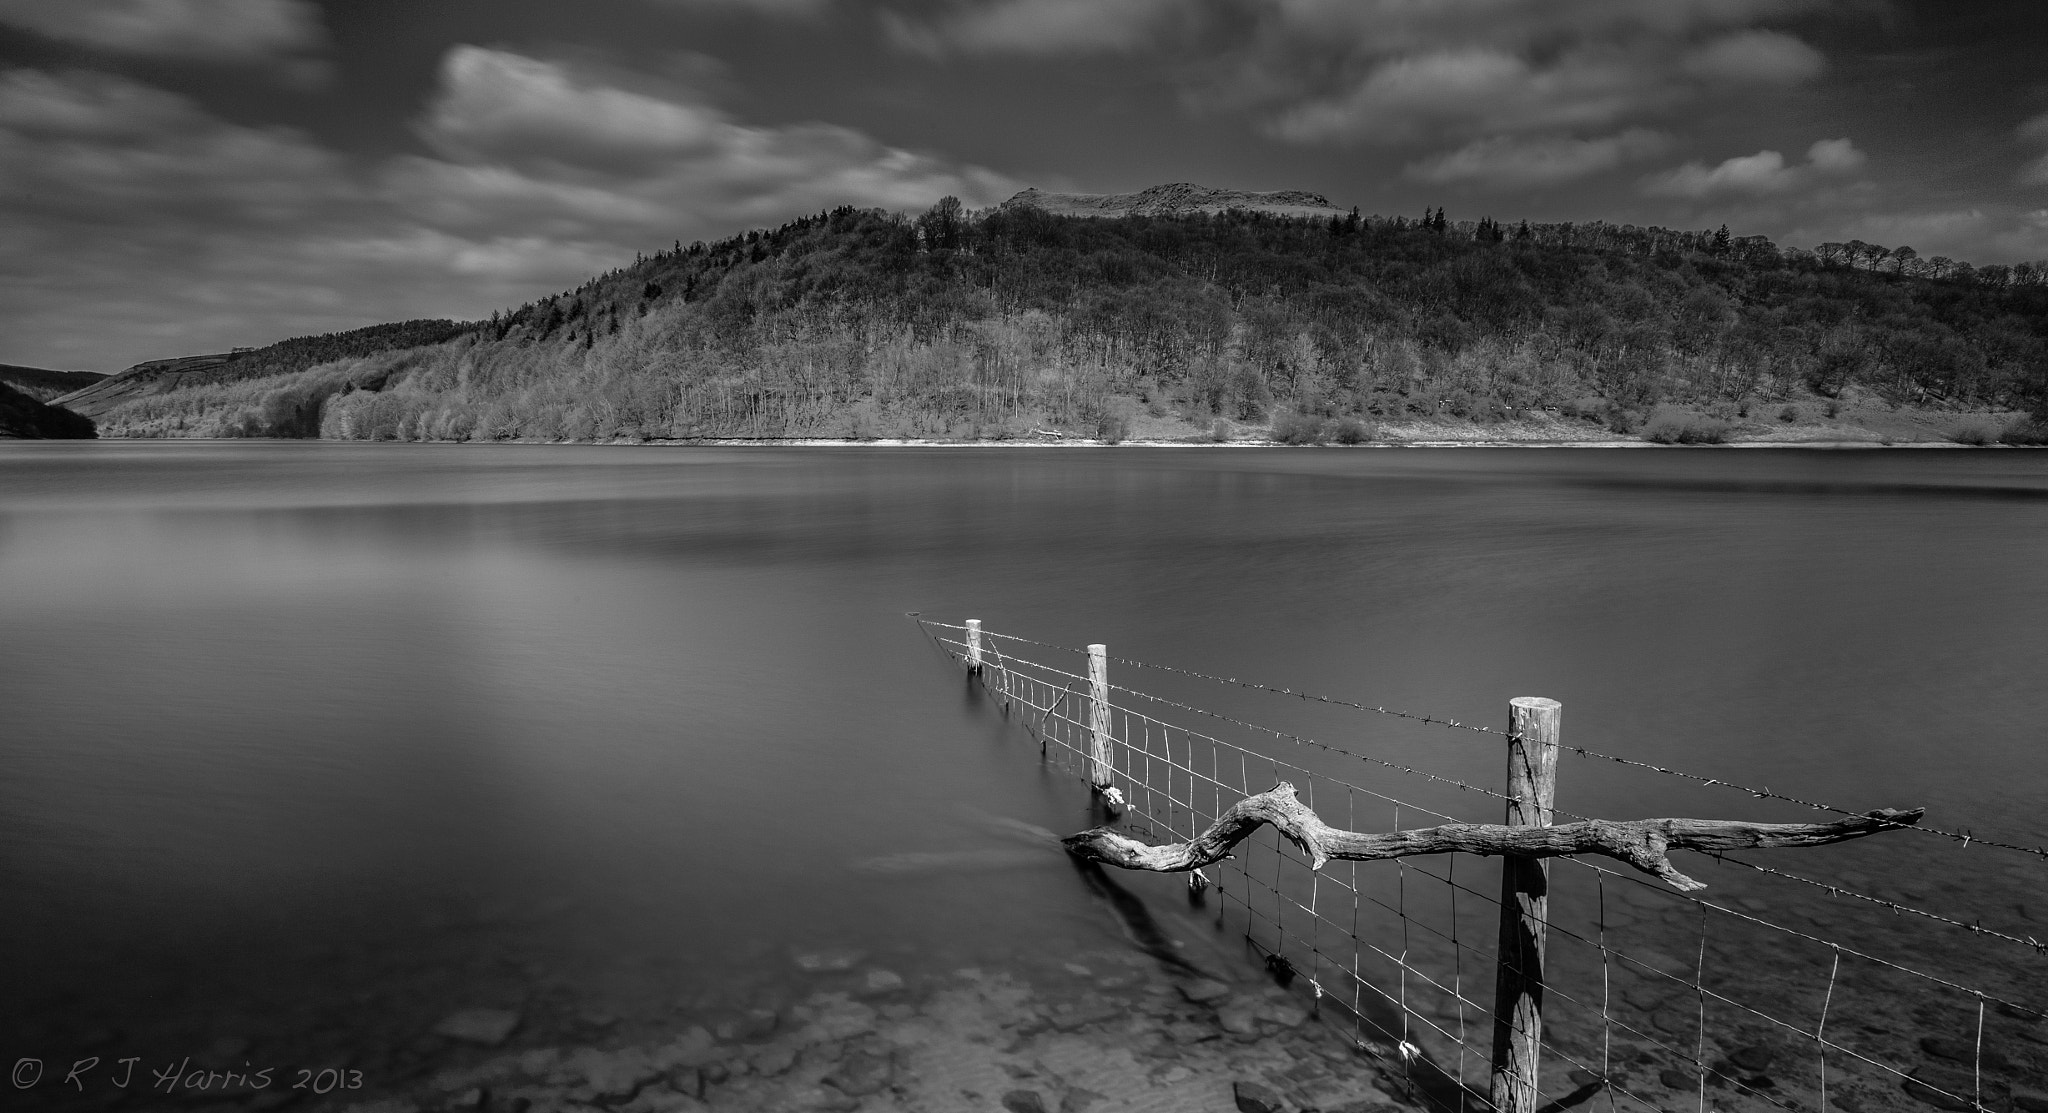 Photograph Derwent Valley by Rob Harris on 500px